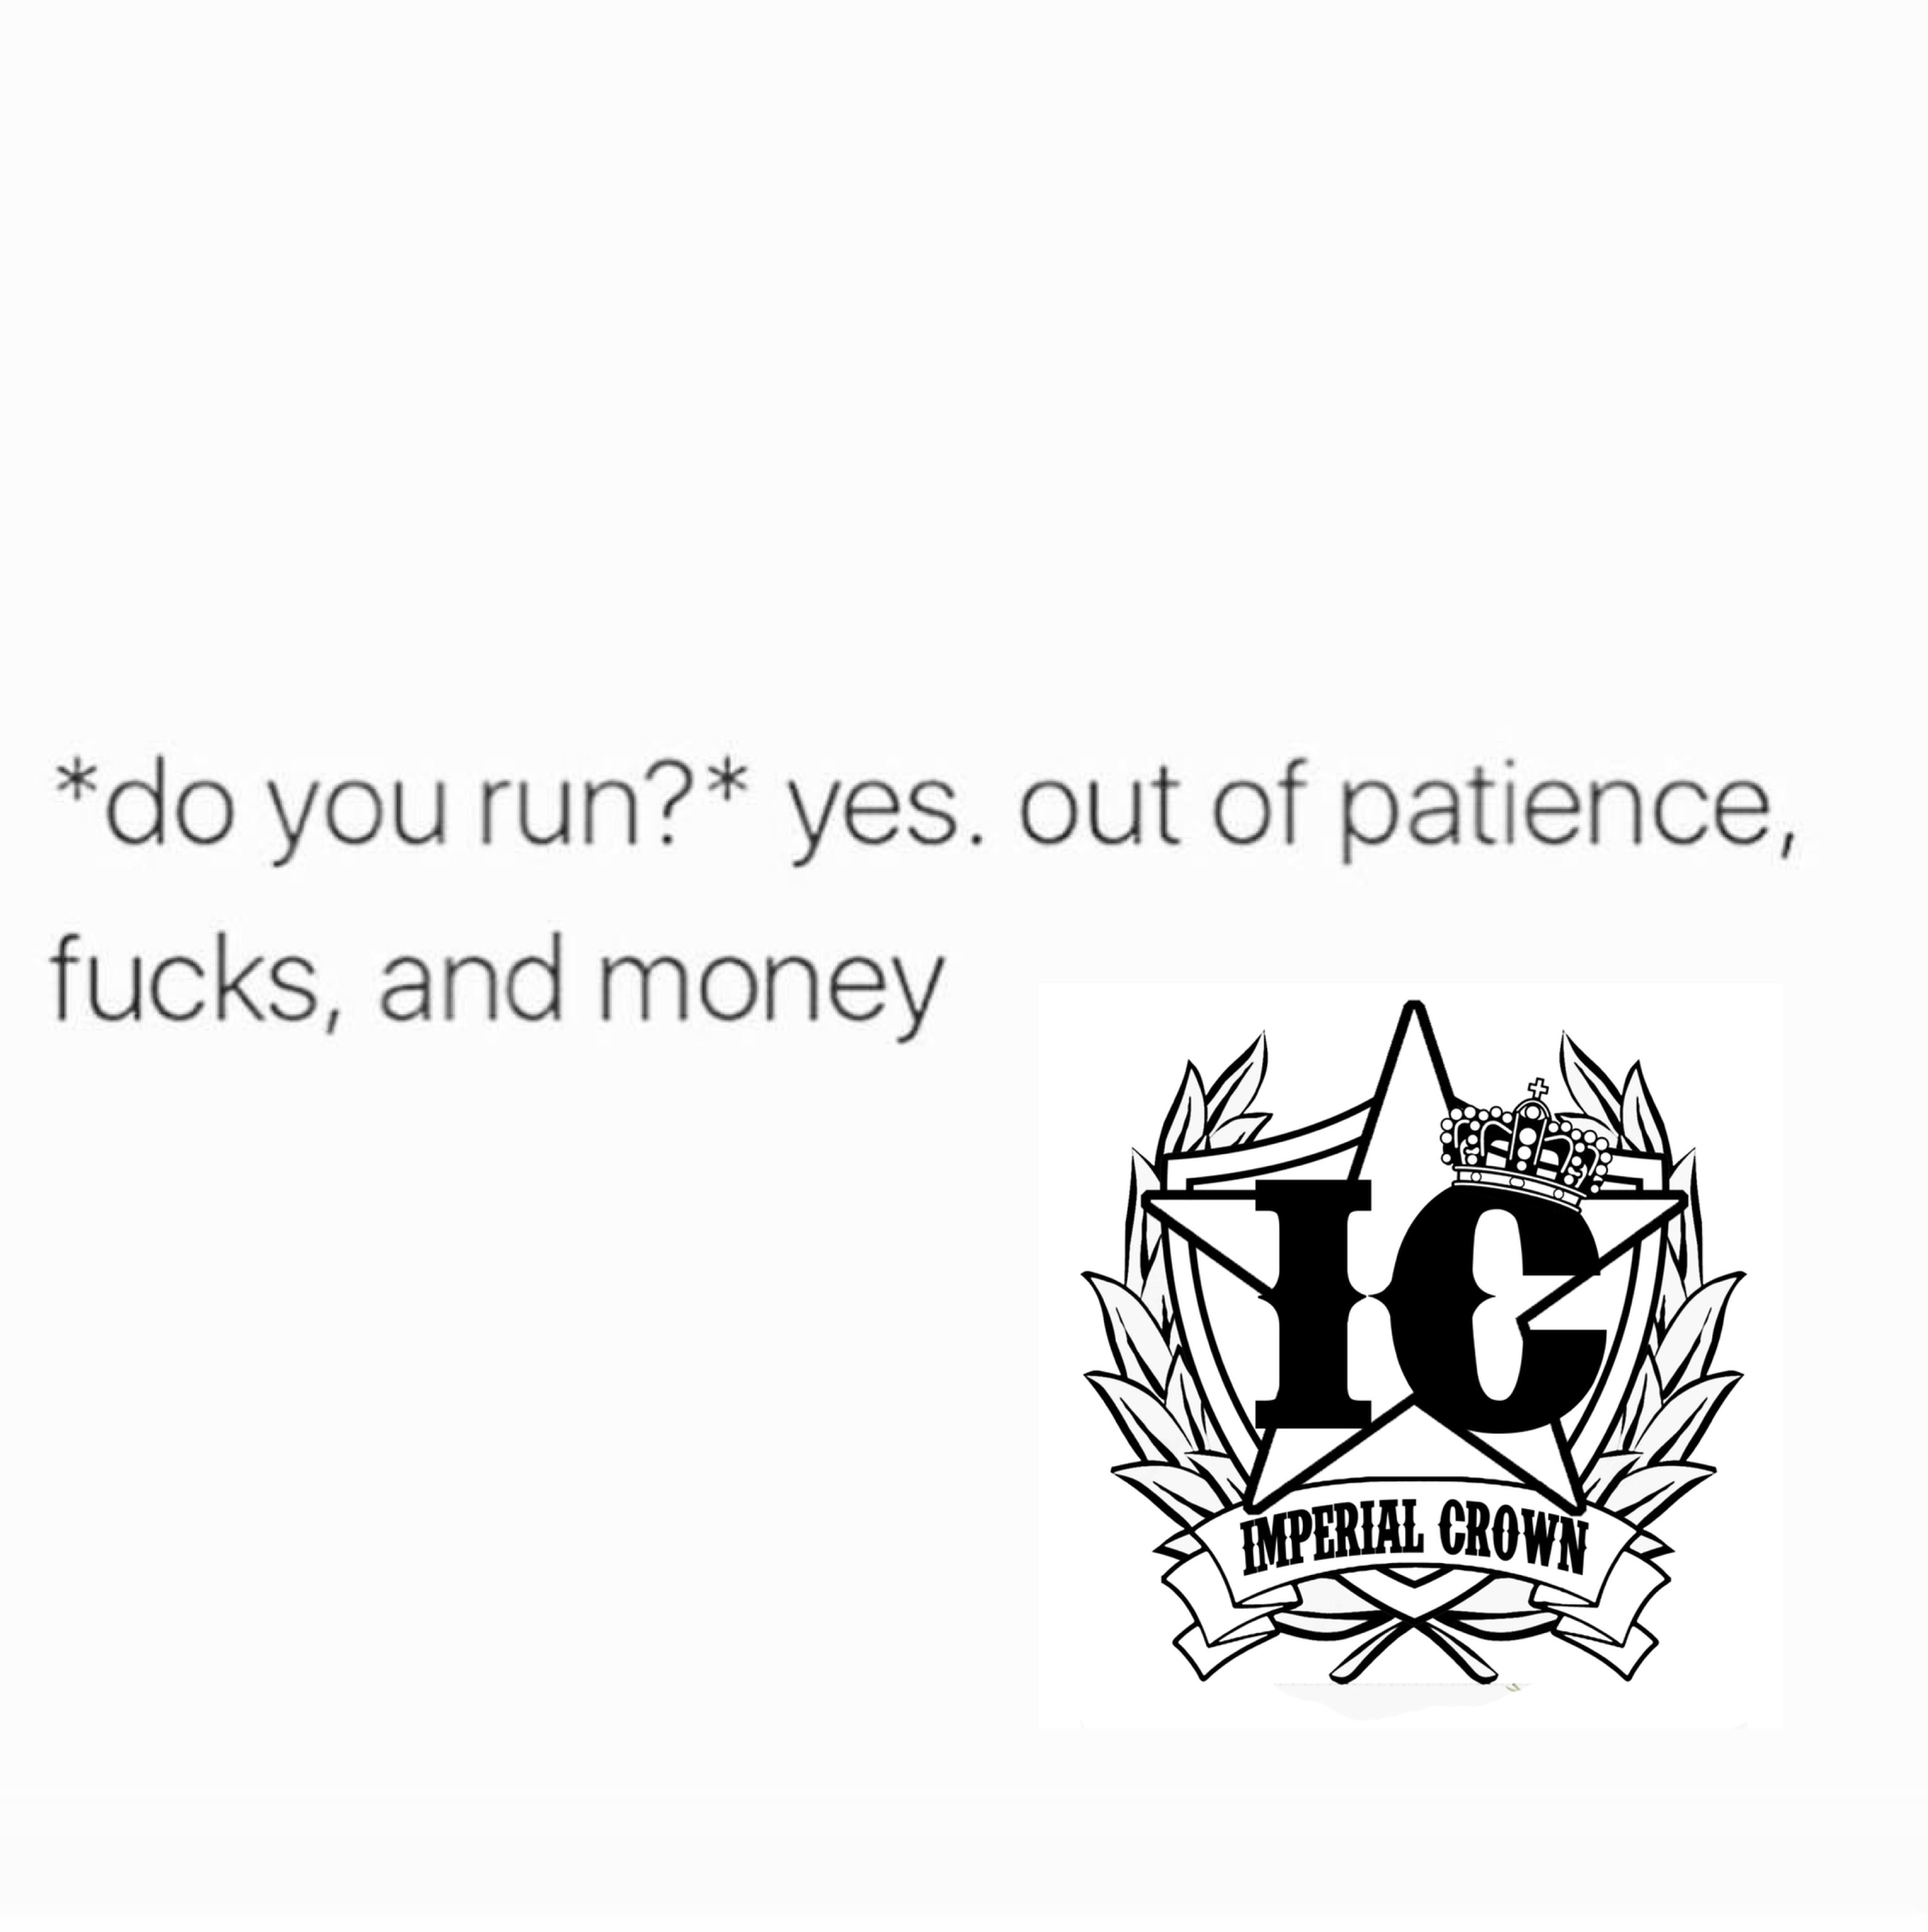 Do you run yes out of patience fucks and money